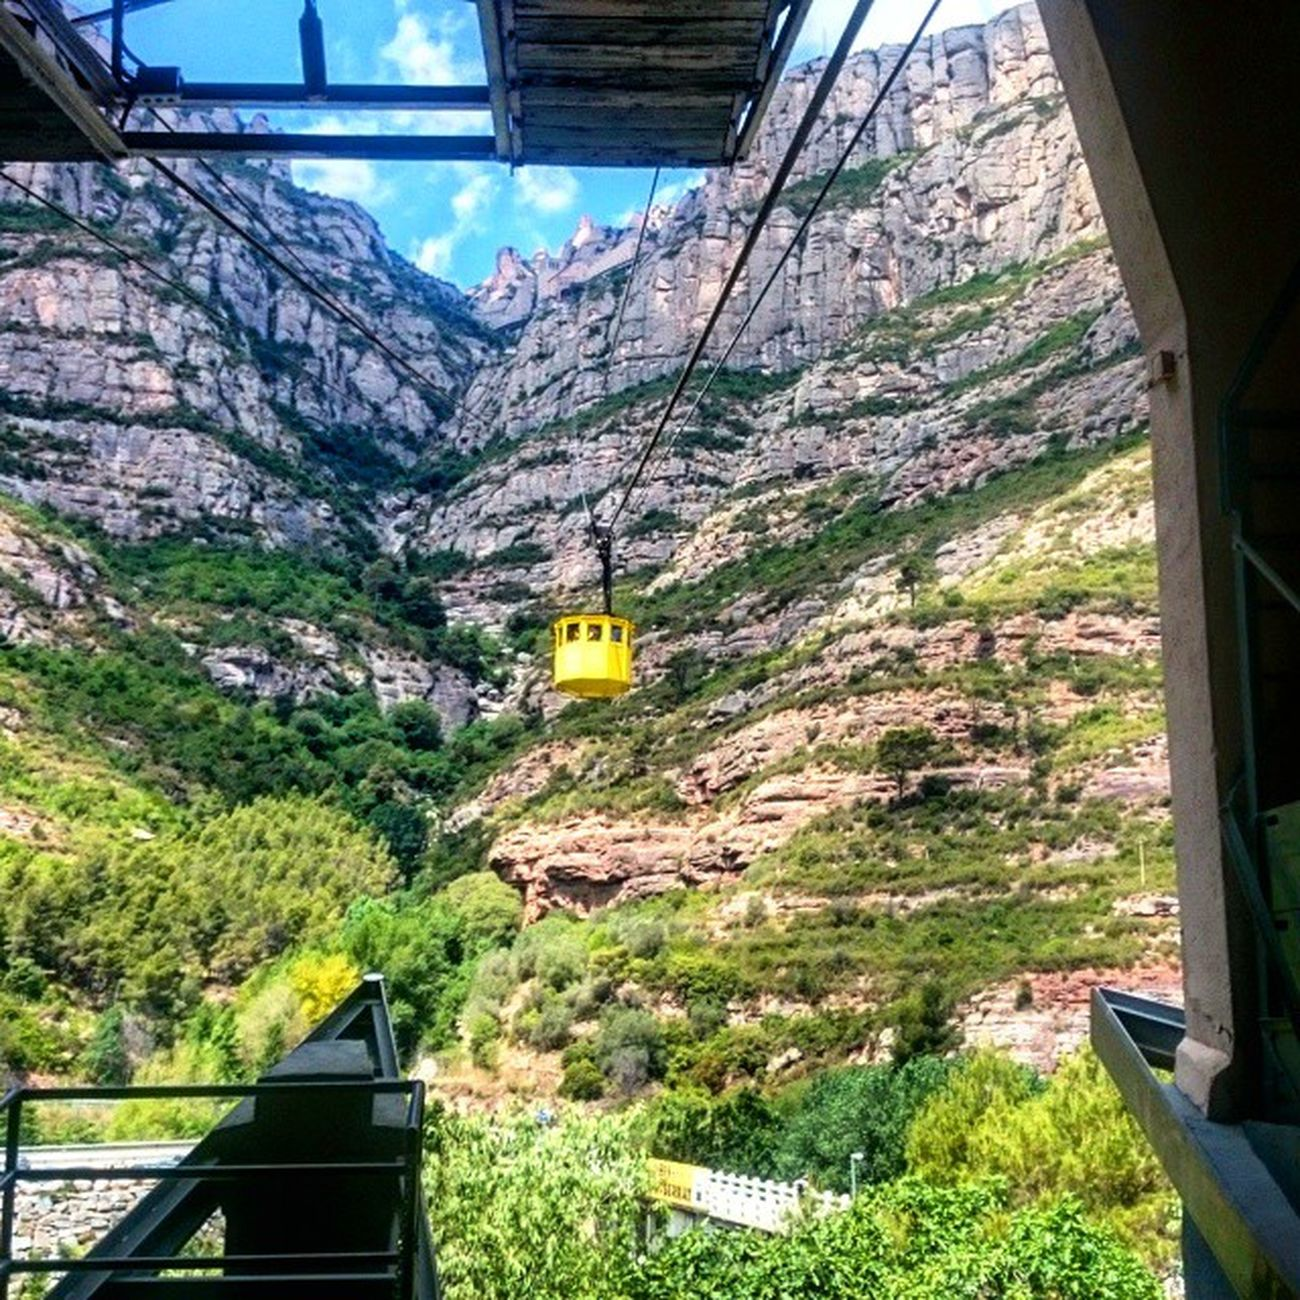 Montserrat 2ndDate Love Exploring Adventure June Romance Romanticadventures Beforethetop Cablecar GettingHigh Spannishhistory Instagood 2015